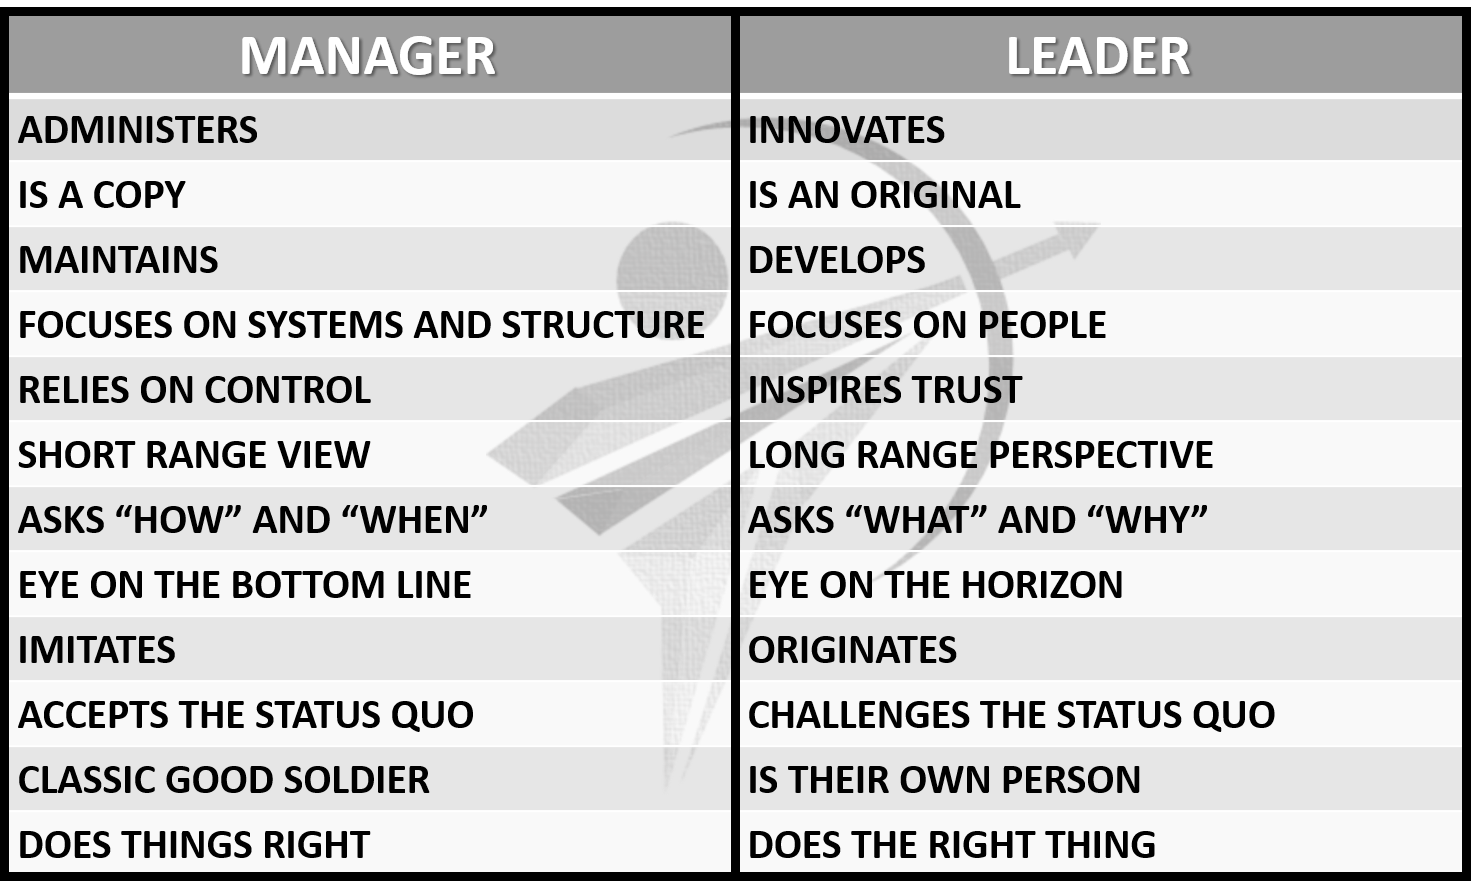 The Difference Between Manager and Leader